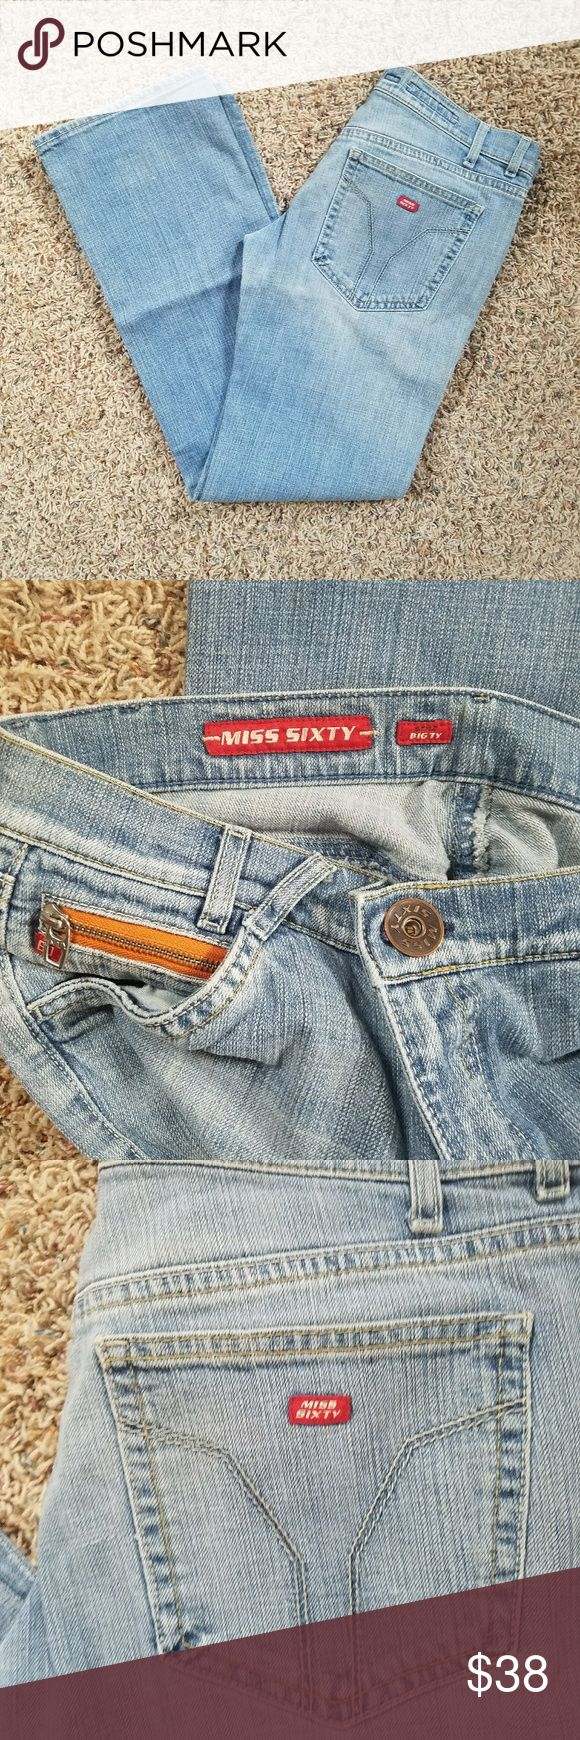 Miss Sixty Jeans Light wash Big TV style in great shape. Miss Sixty Jeans Straight Leg